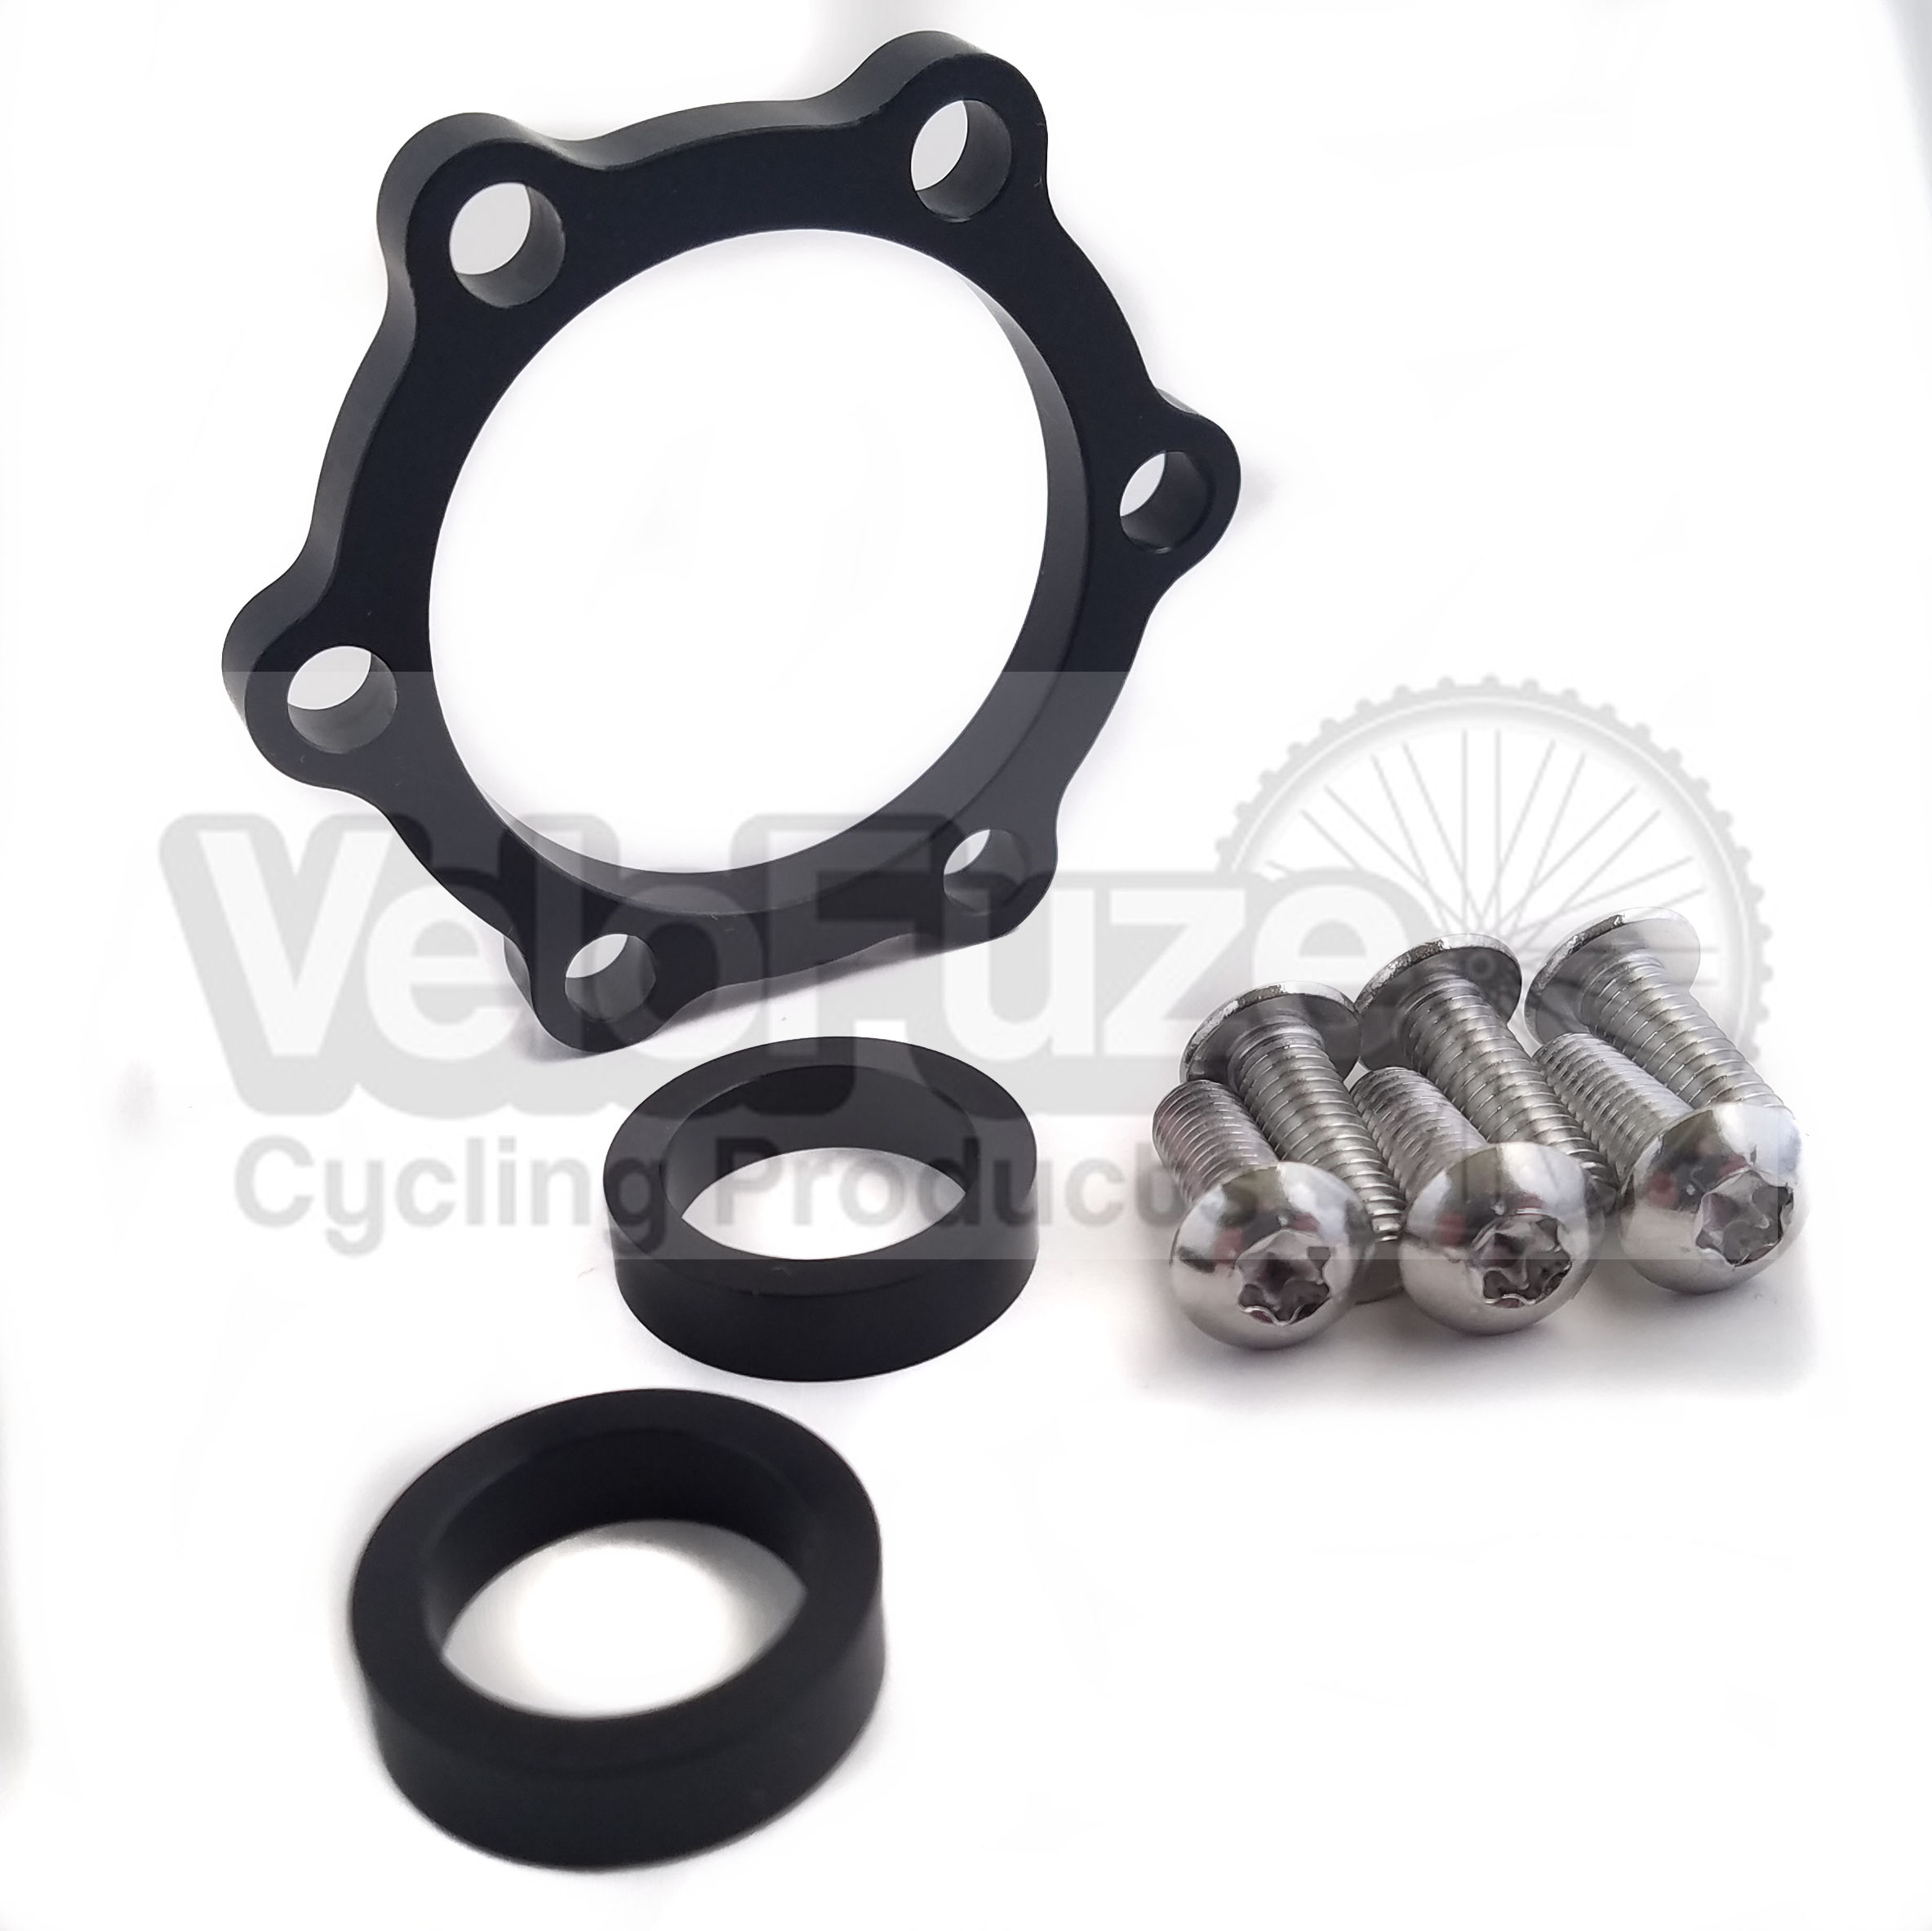 Front Hub Adapter Boost Fork Conversion Kit Thru Axle 15mm x 100mm to 110mm